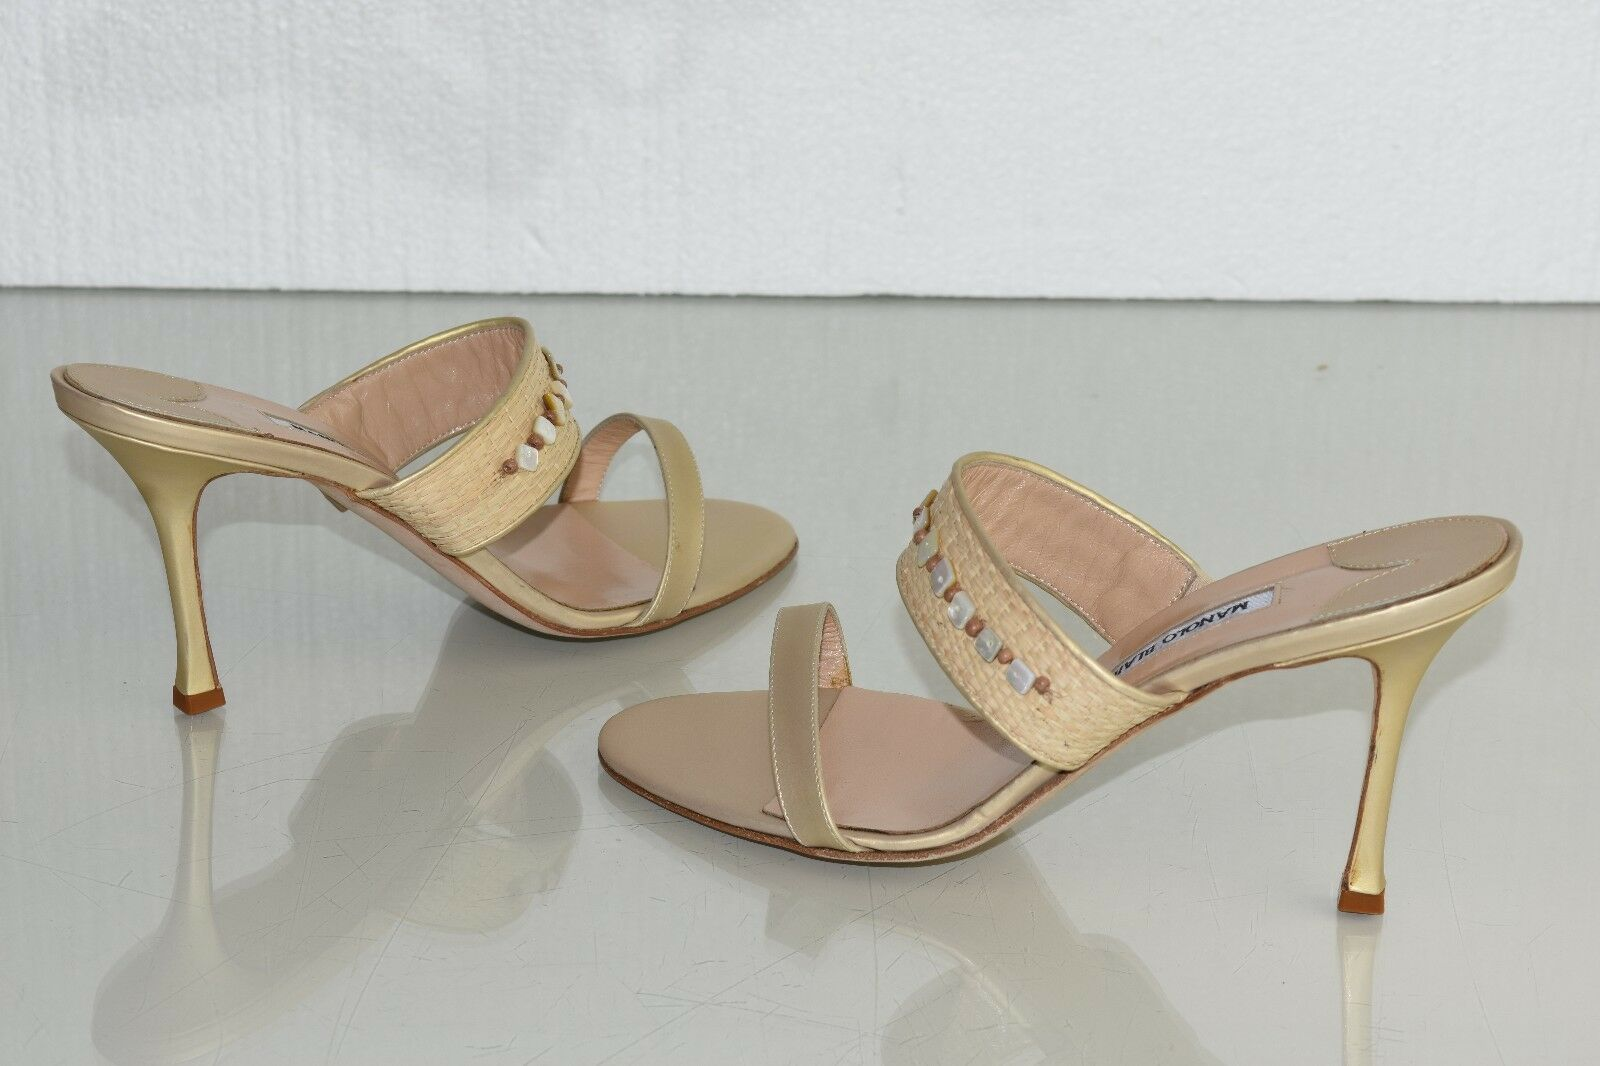 895 New MANOLO BLAHNIK Beige RAFFIA Nude Leather STRAW Jewel Sandals SHOES 40.5